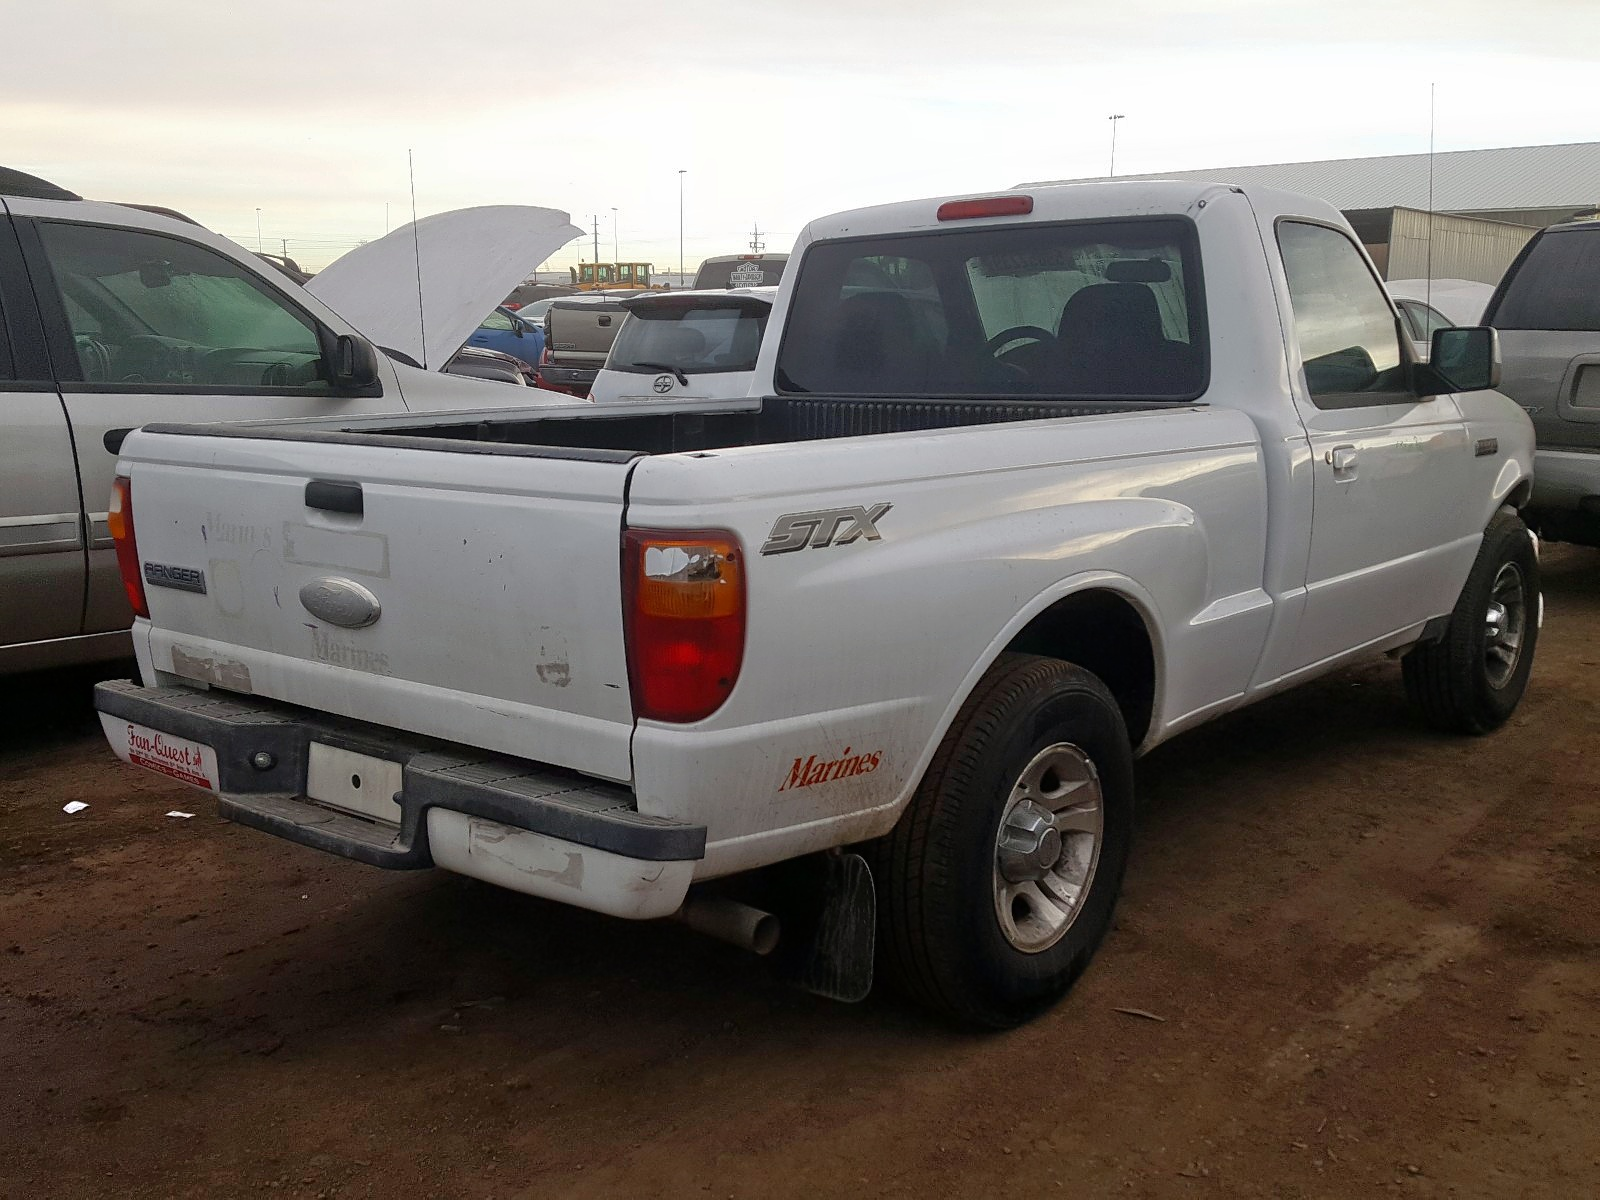 1FTYR10U26PA04908 - 2006 Ford Ranger 3.0L rear view